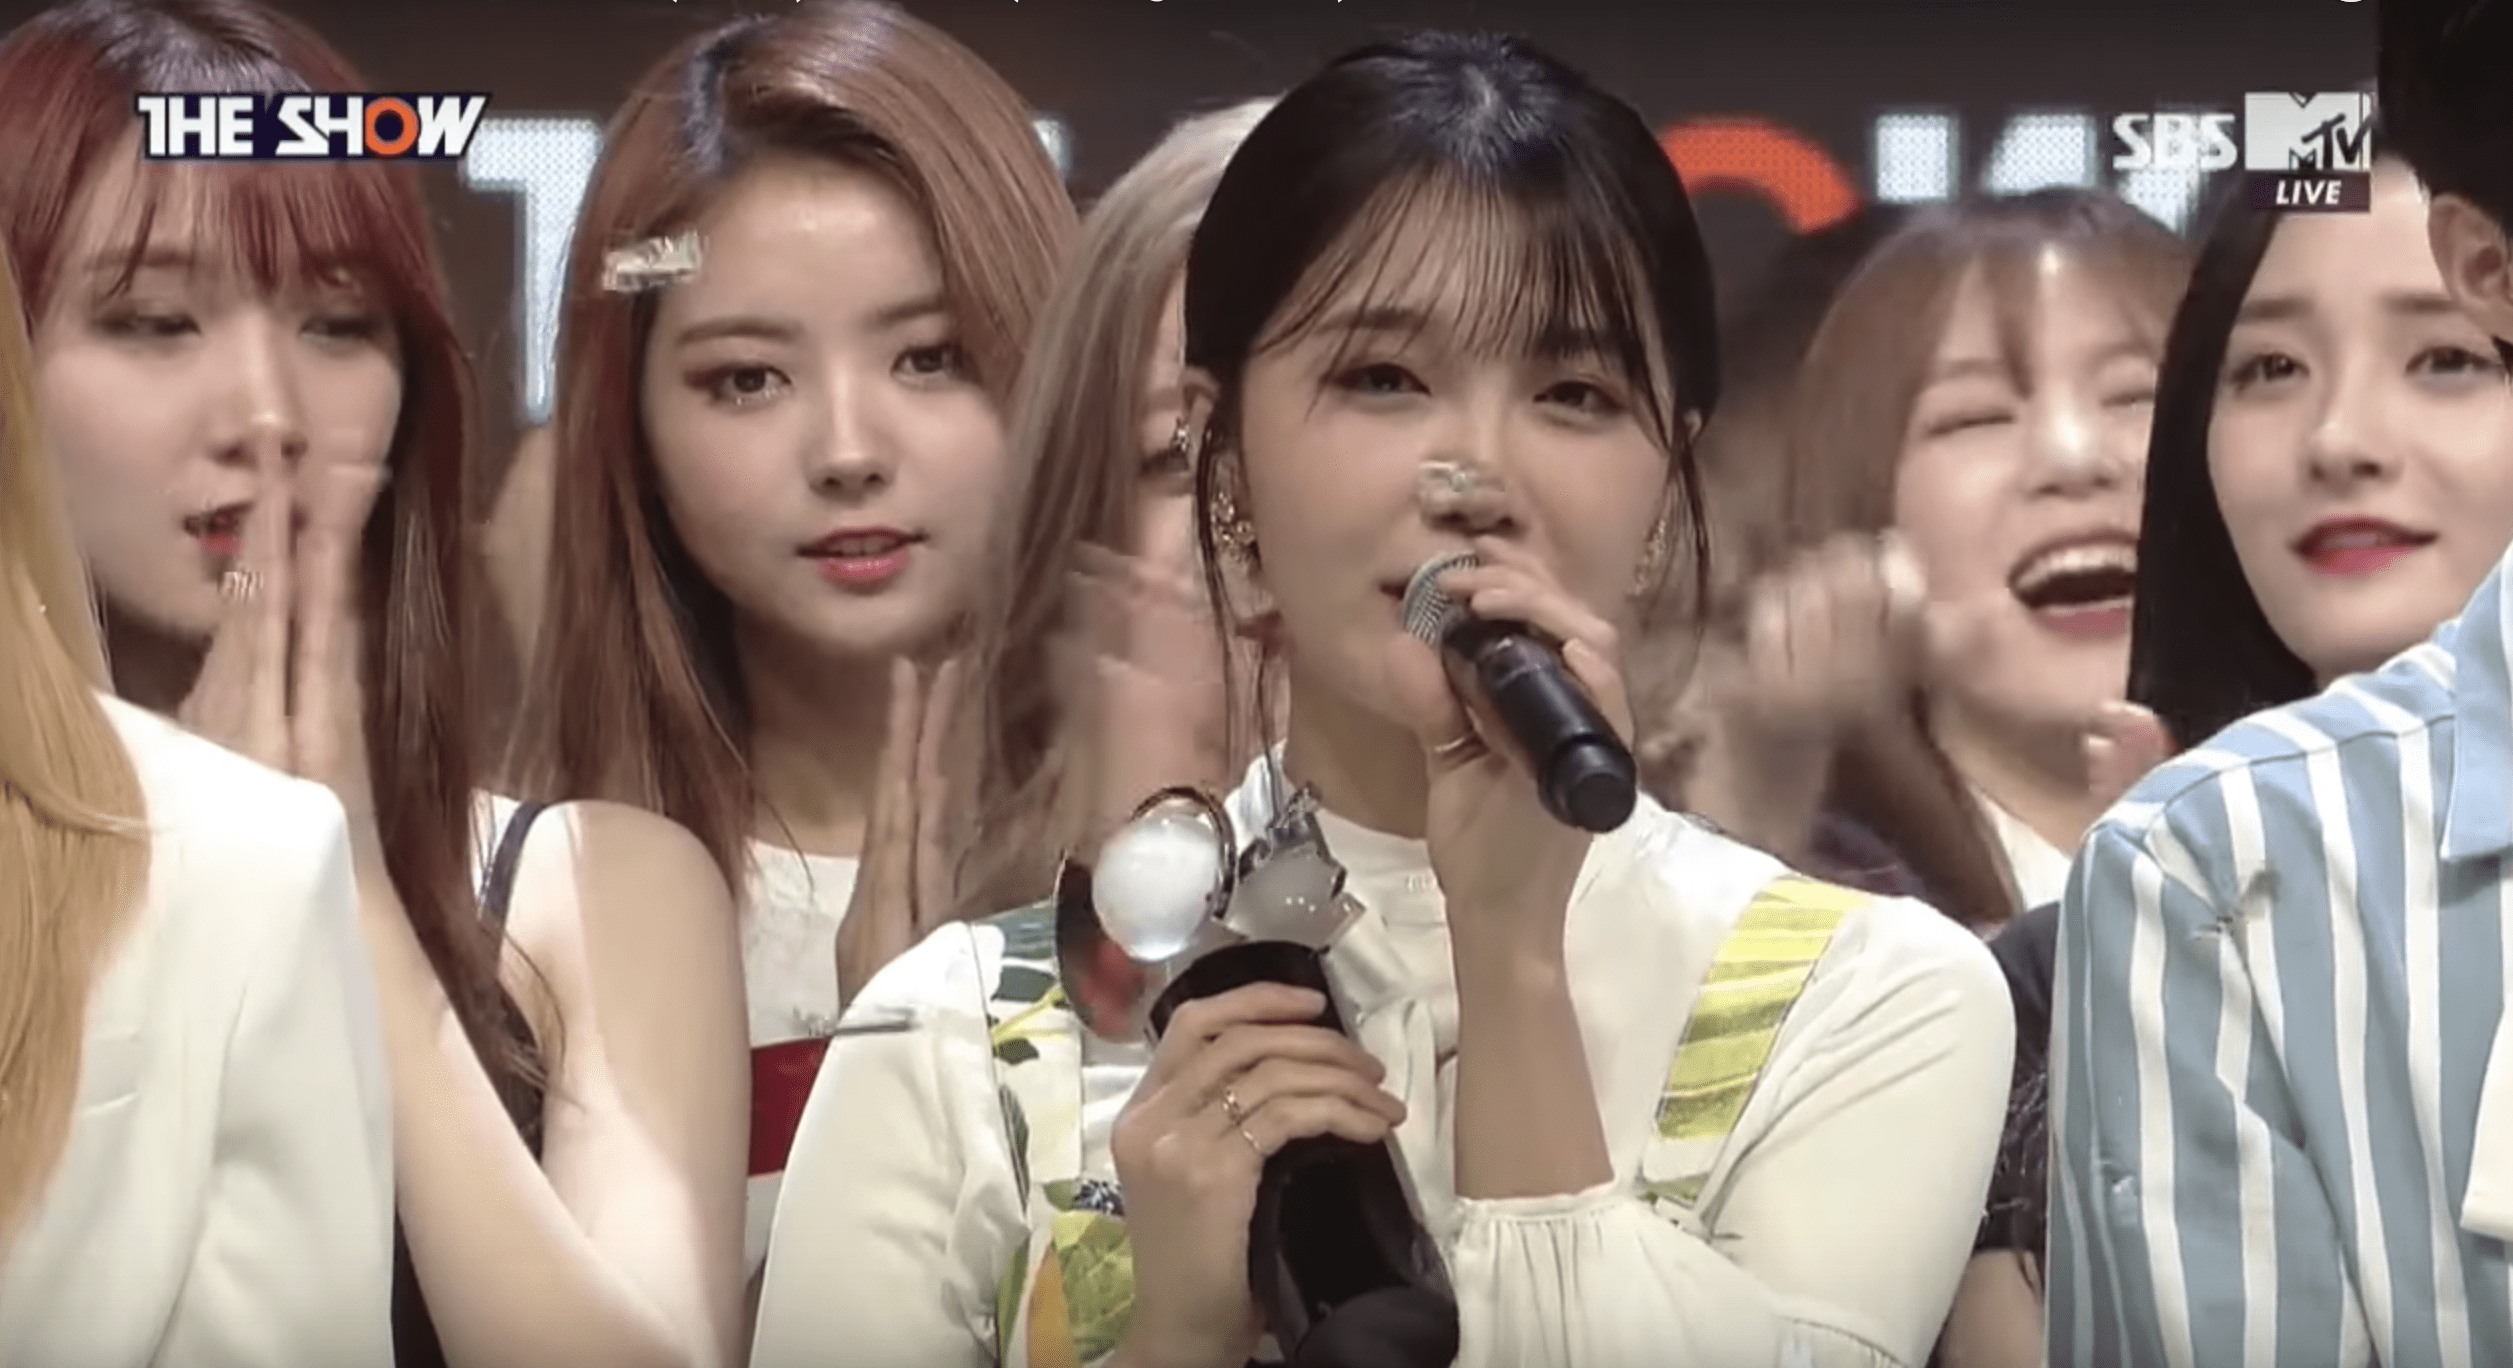 """Watch: Jung Eun Ji Takes 1st Win With """"The Spring"""" On """"The Show,"""" Performances By Minzy, EXID, Teen Top, And More"""